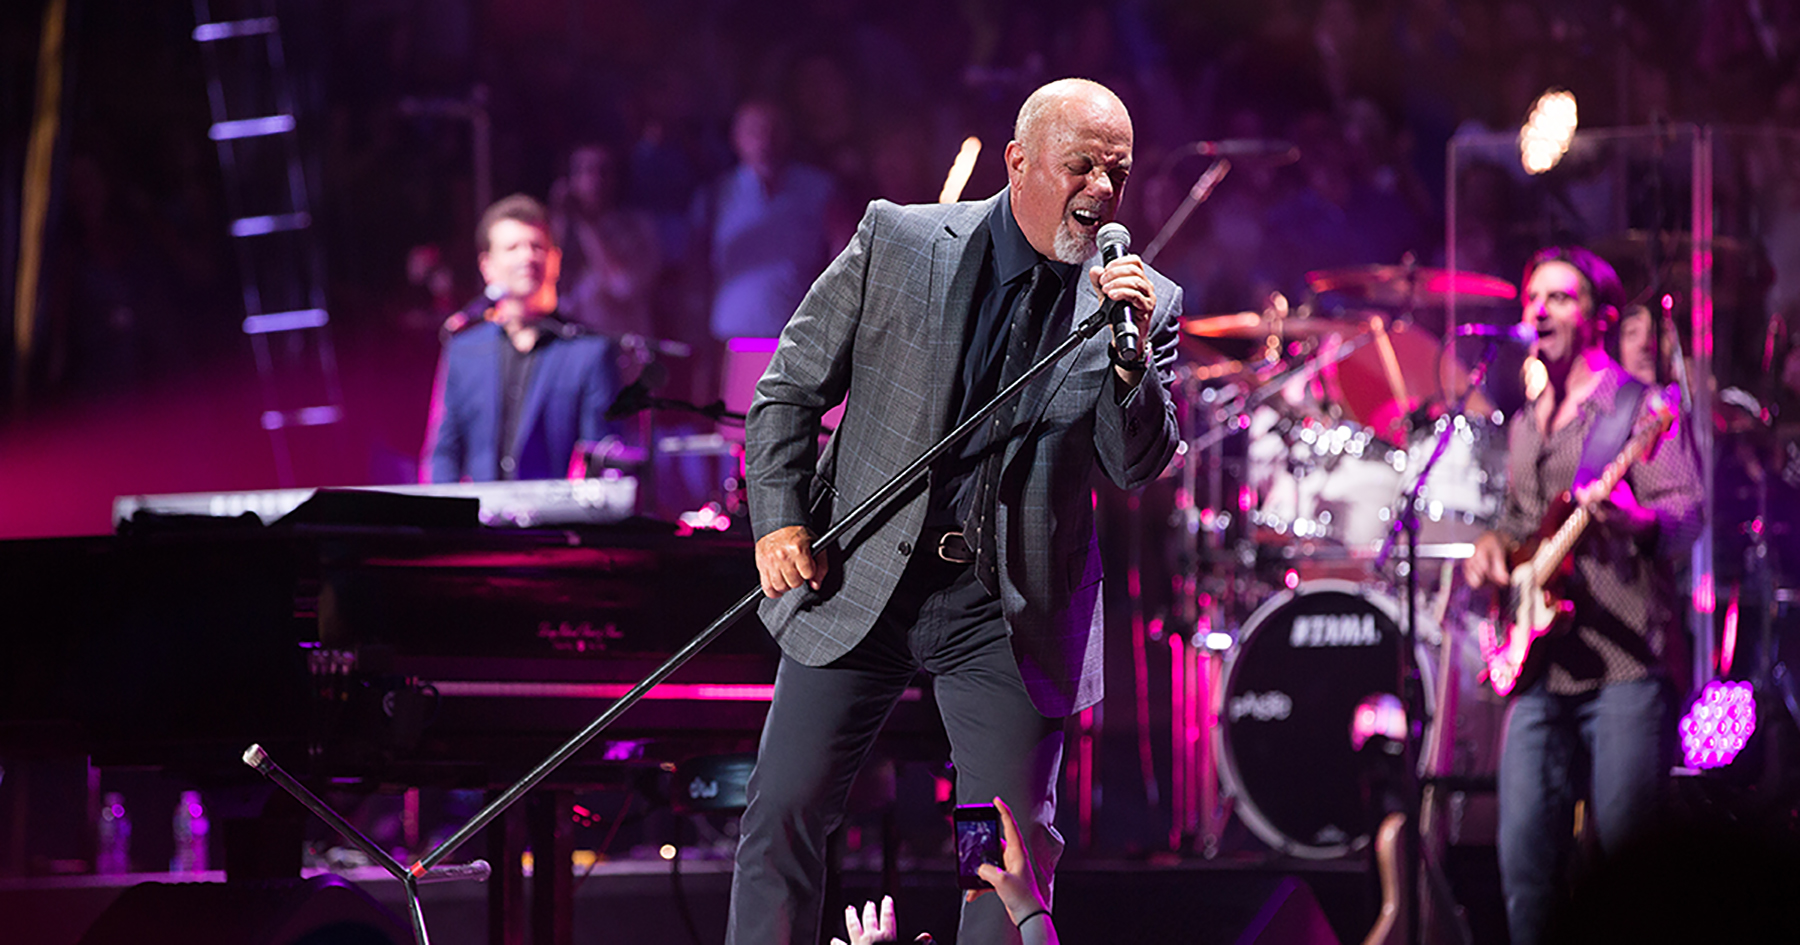 Billy Joel at MSG – October 11, 2020